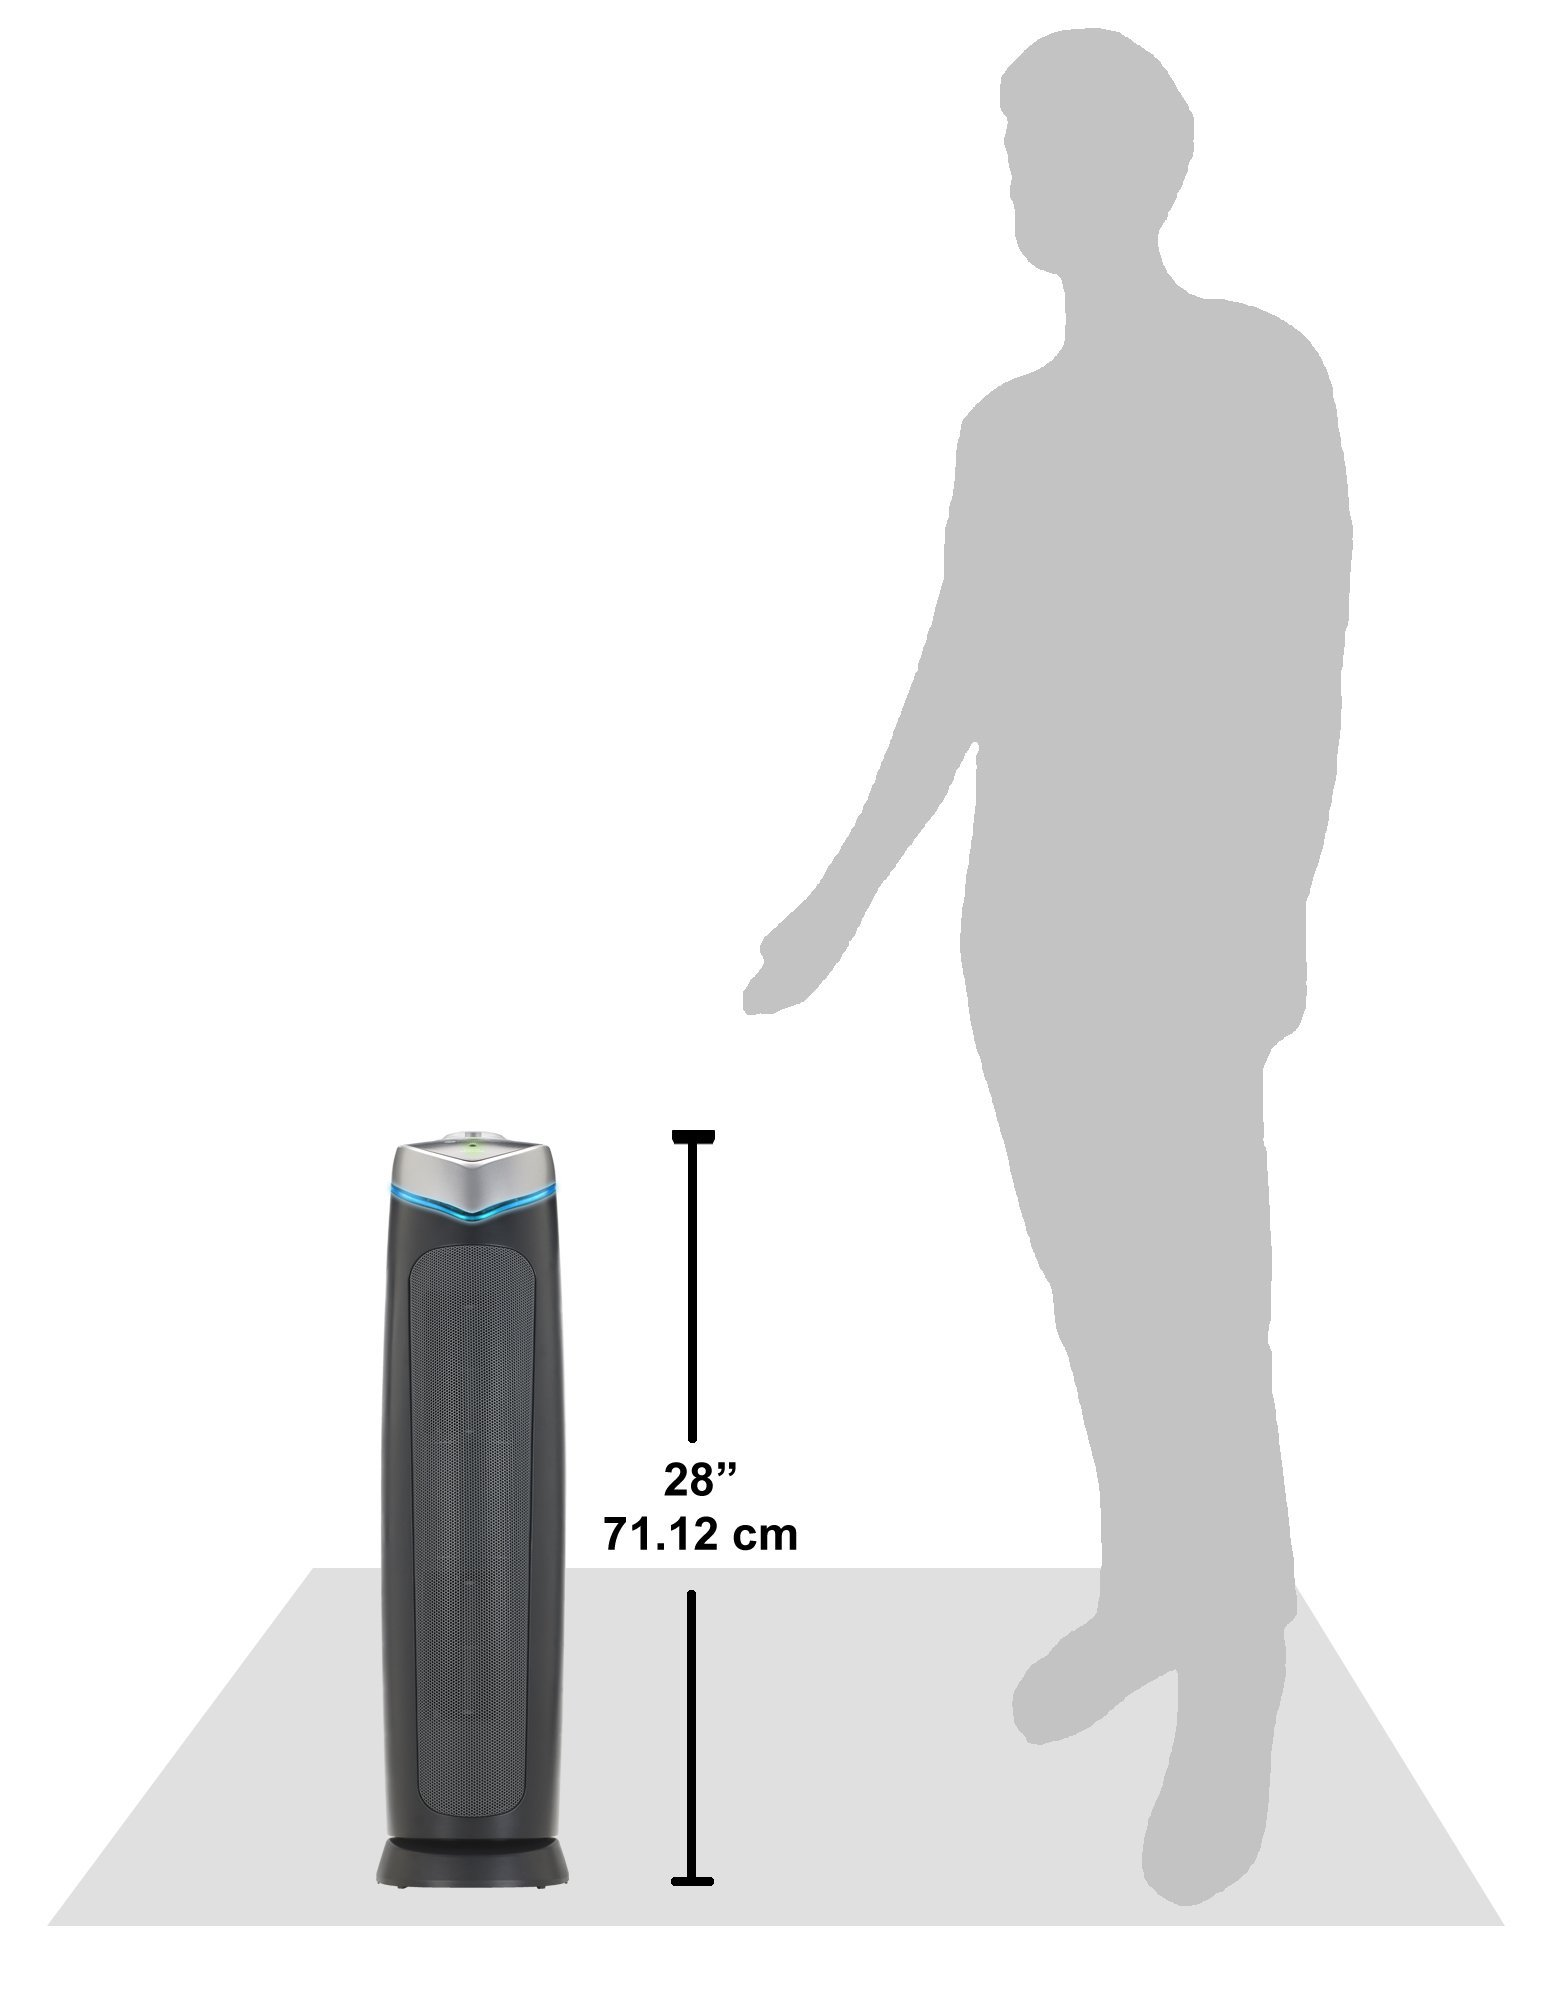 GermGuardian AC5000E 3-in-1 Air Purifier with True HEPA Filter, UV-C Sanitizer, Captures Allergens, Smoke, Odors, Mold, Dust, Germs, Pets, Smokers, 28-Inch Germ Guardian Air Purifier by Guardian Technologies (Image #9)